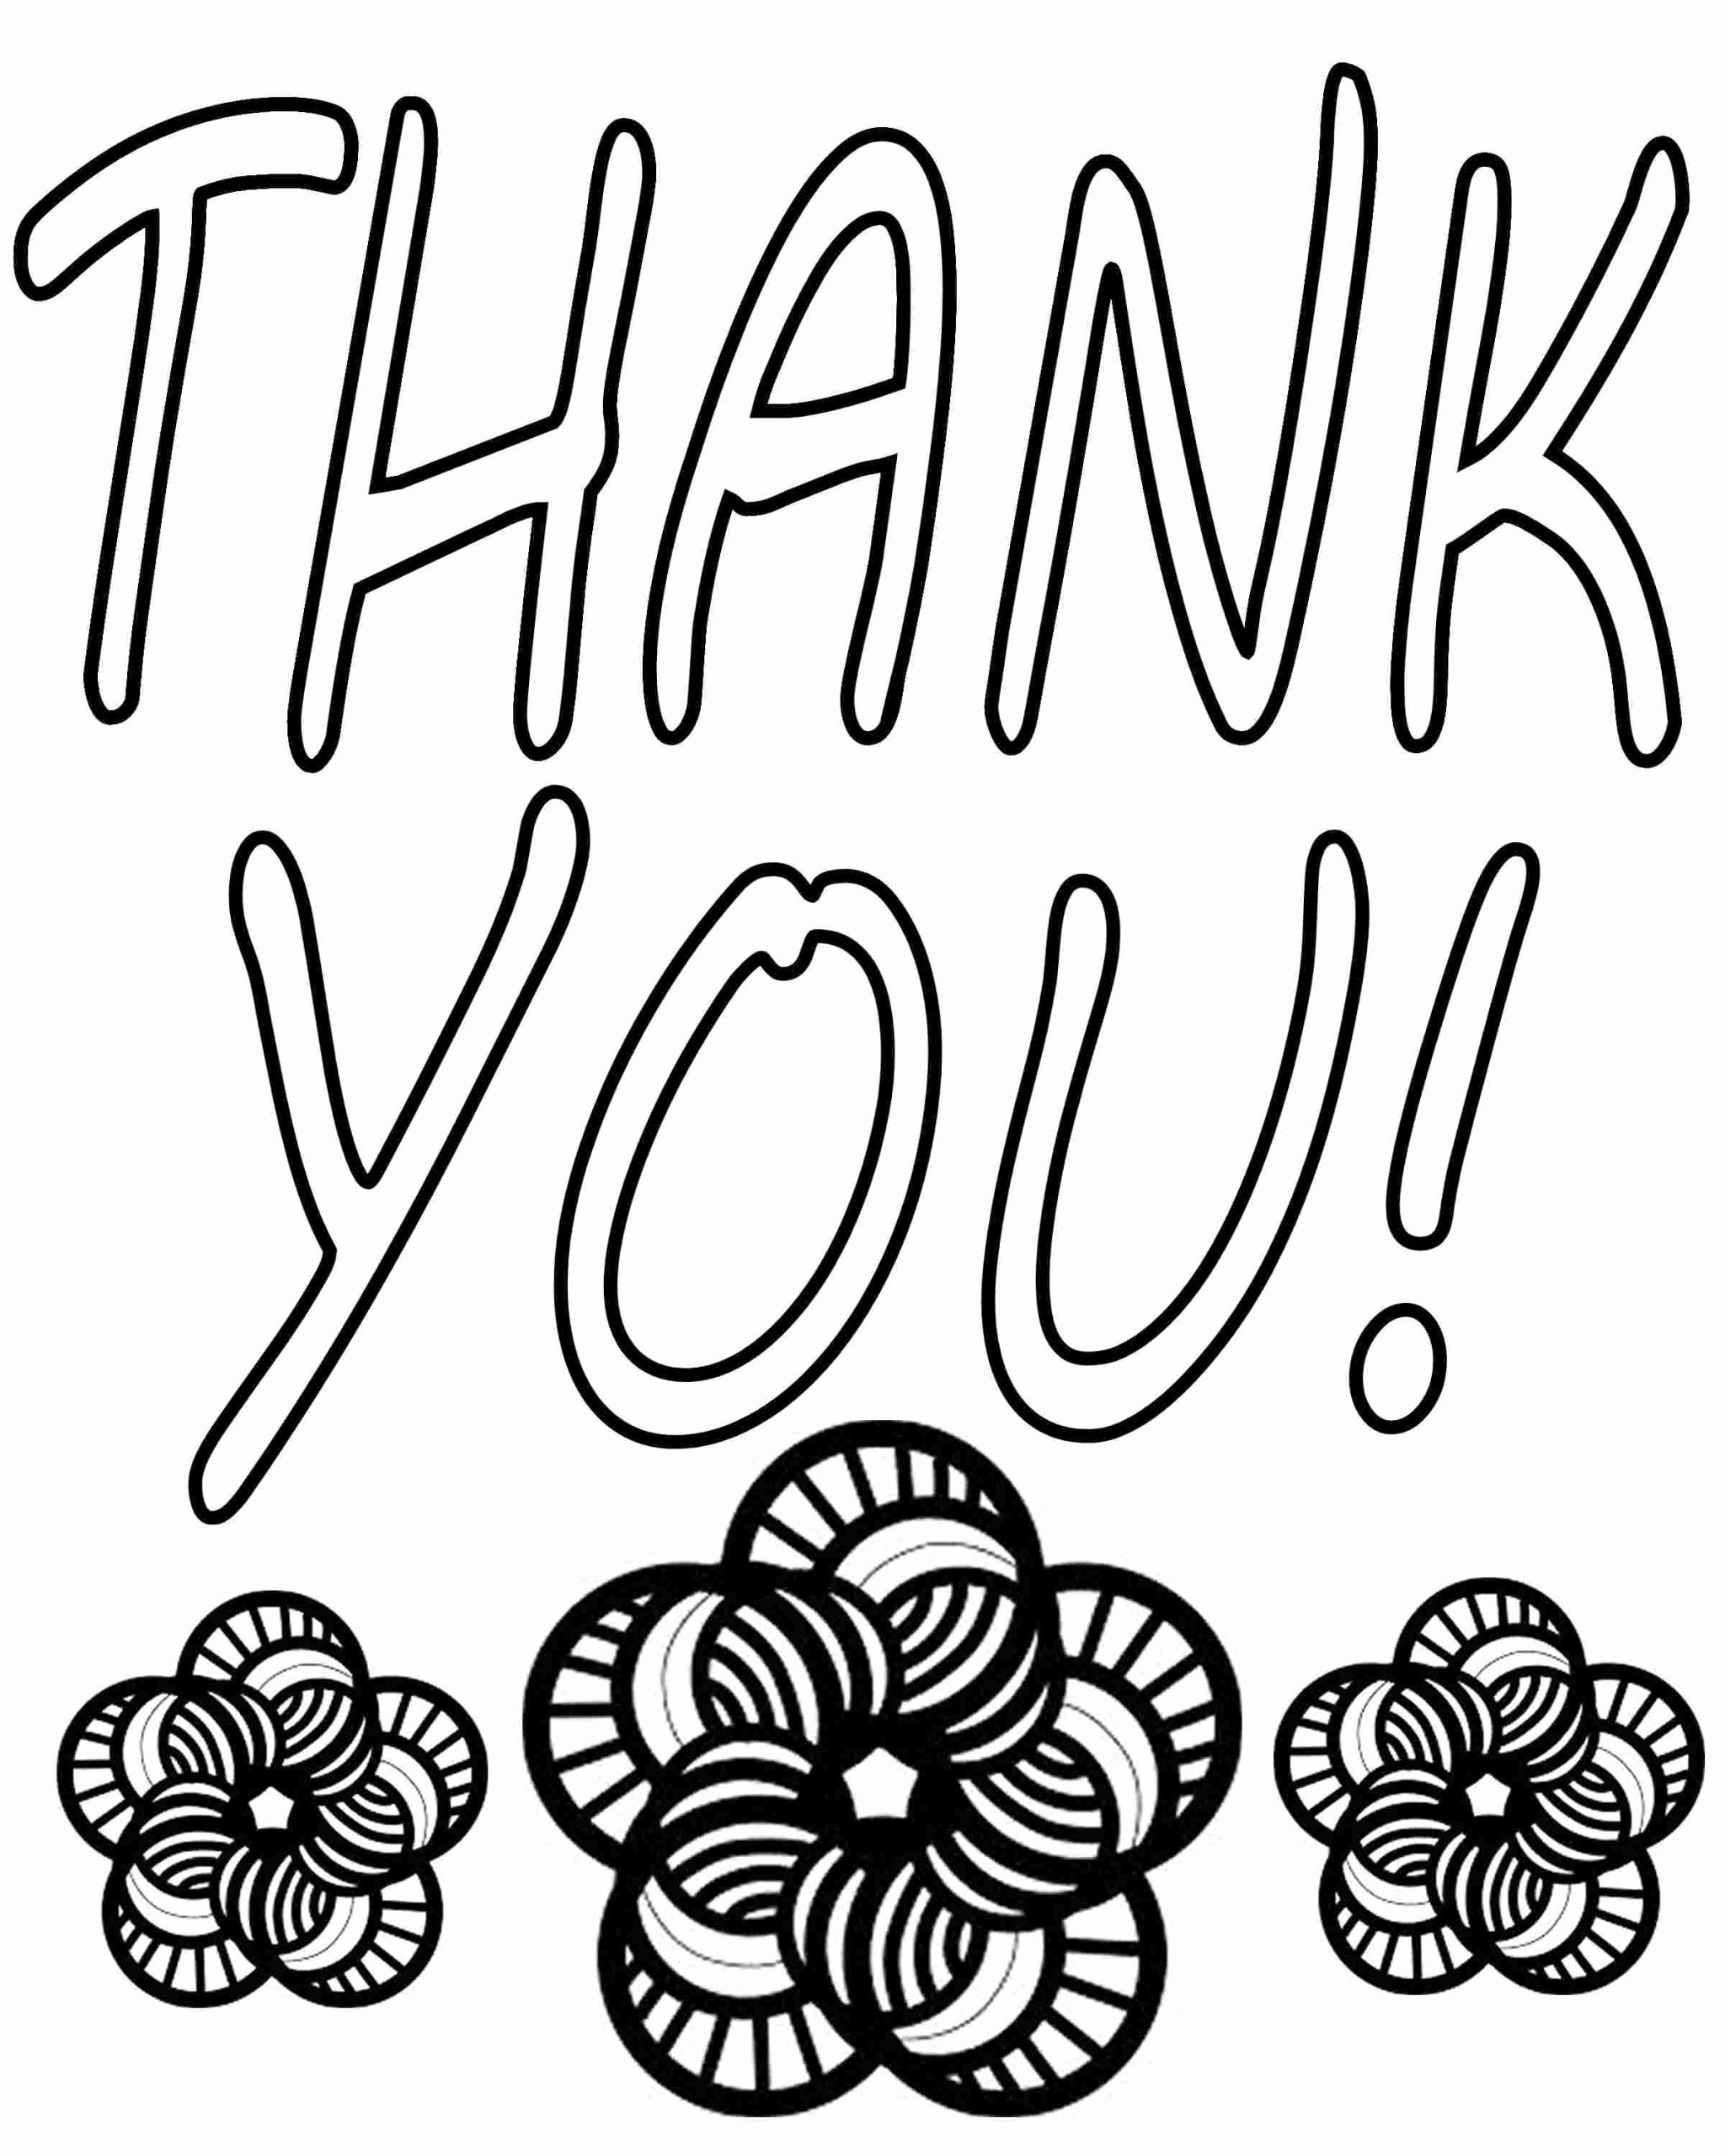 Coloring Pages Of Thank You Cards Heart Coloring Pages Coloring Pages For Kids Printable Coloring Pages